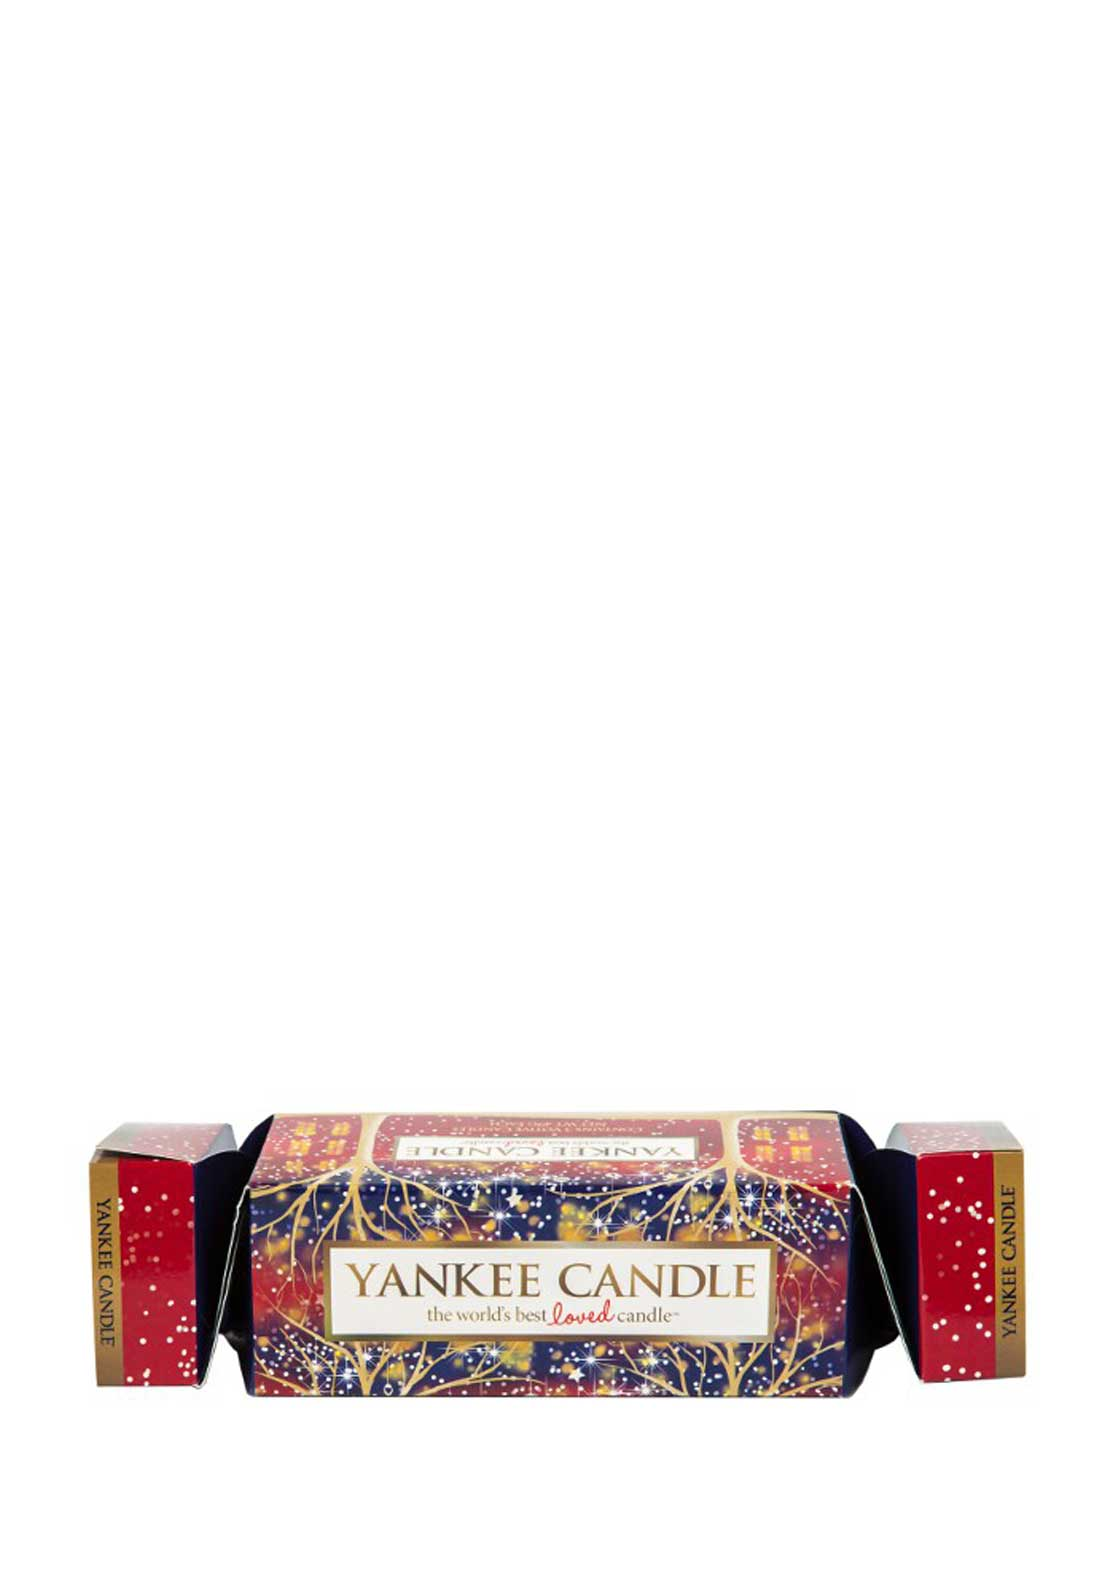 Yankee Candle Christmas 3 Votive Cracker Giftset